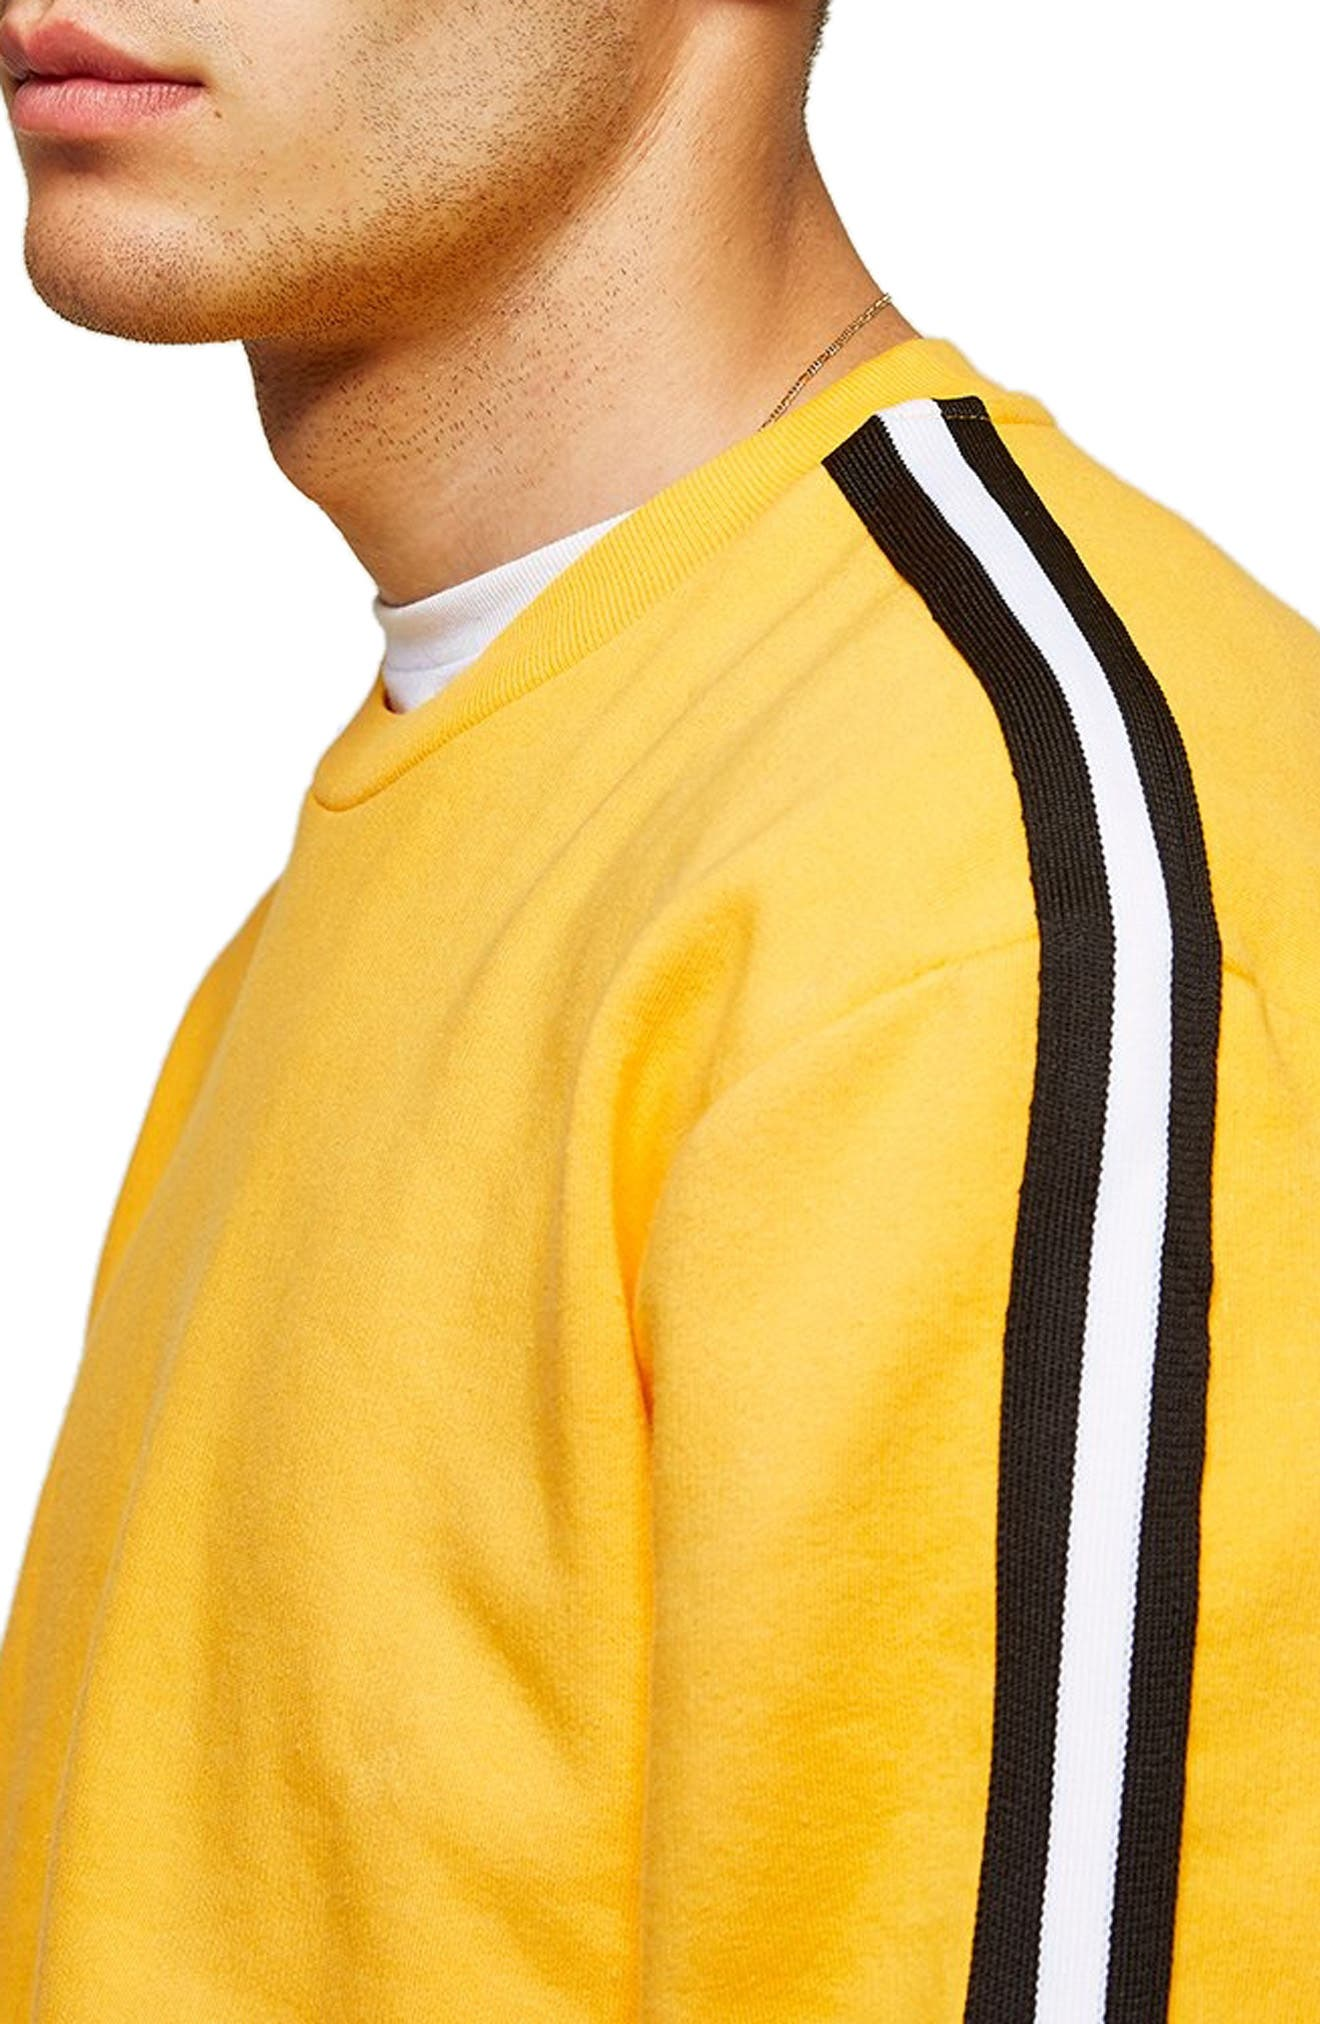 Taped Classic Fit Sweatshirt,                             Alternate thumbnail 4, color,                             700